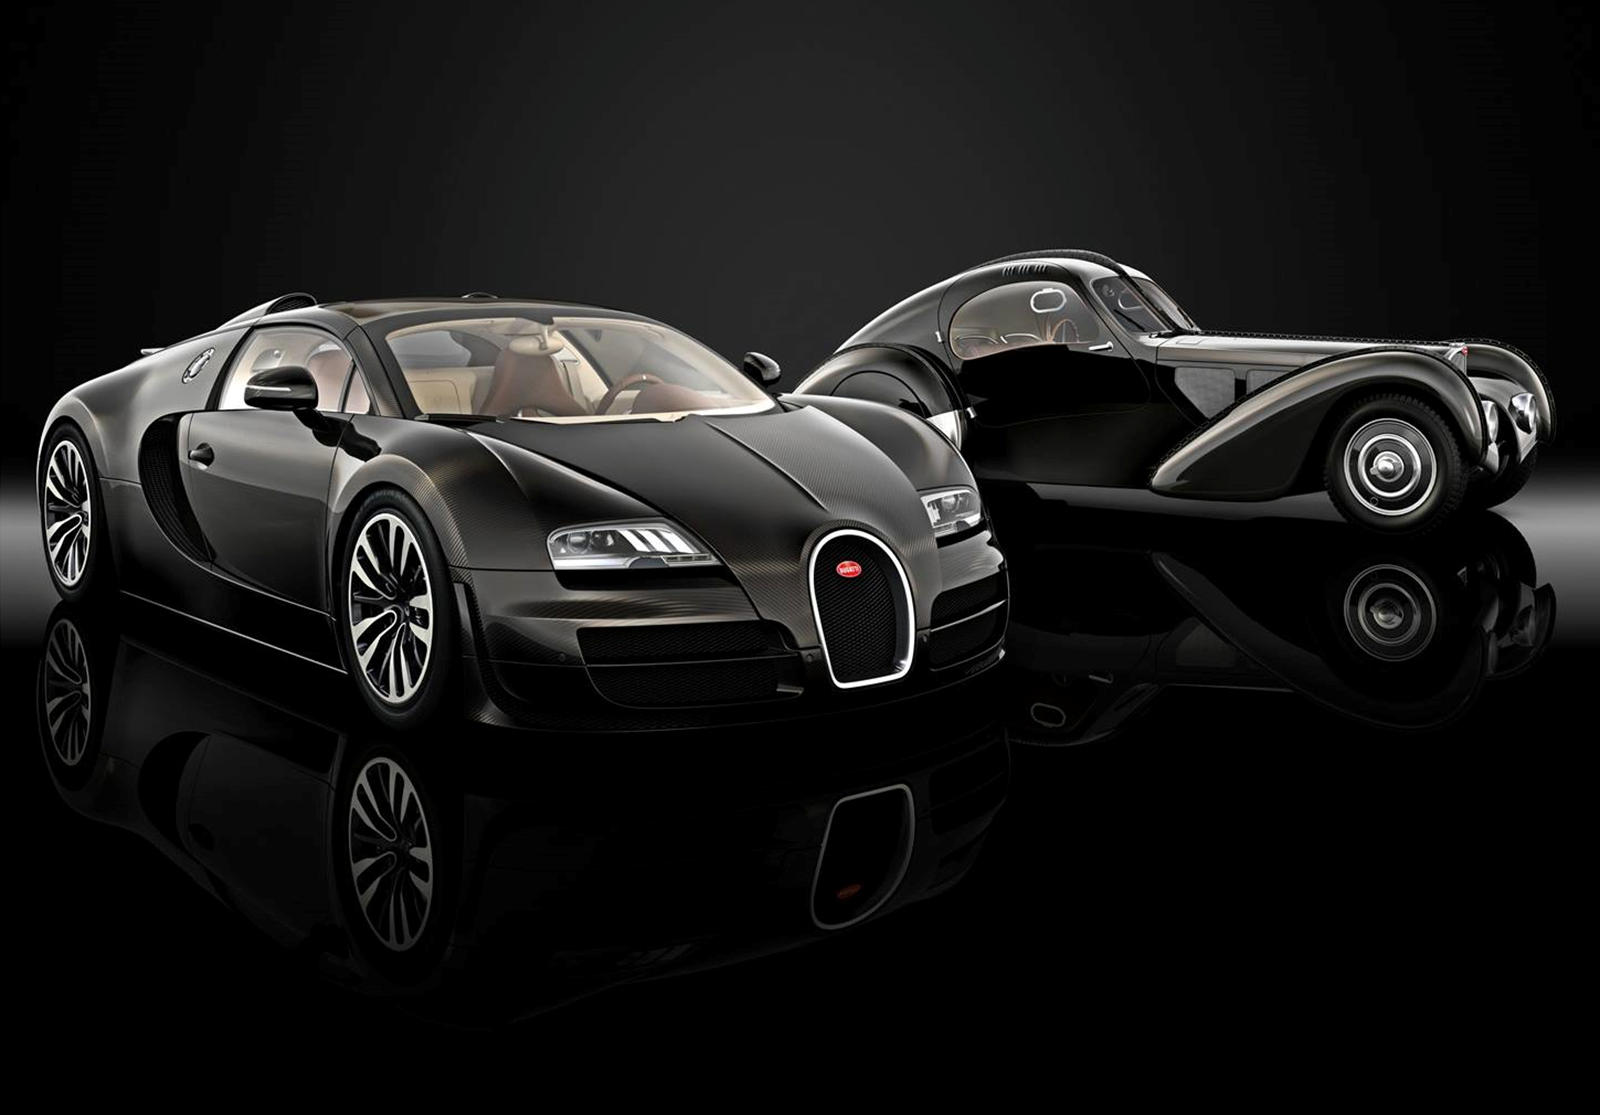 Why Is Bugatti Suddenly Recalling The Iconic Atlantic Carbuzz